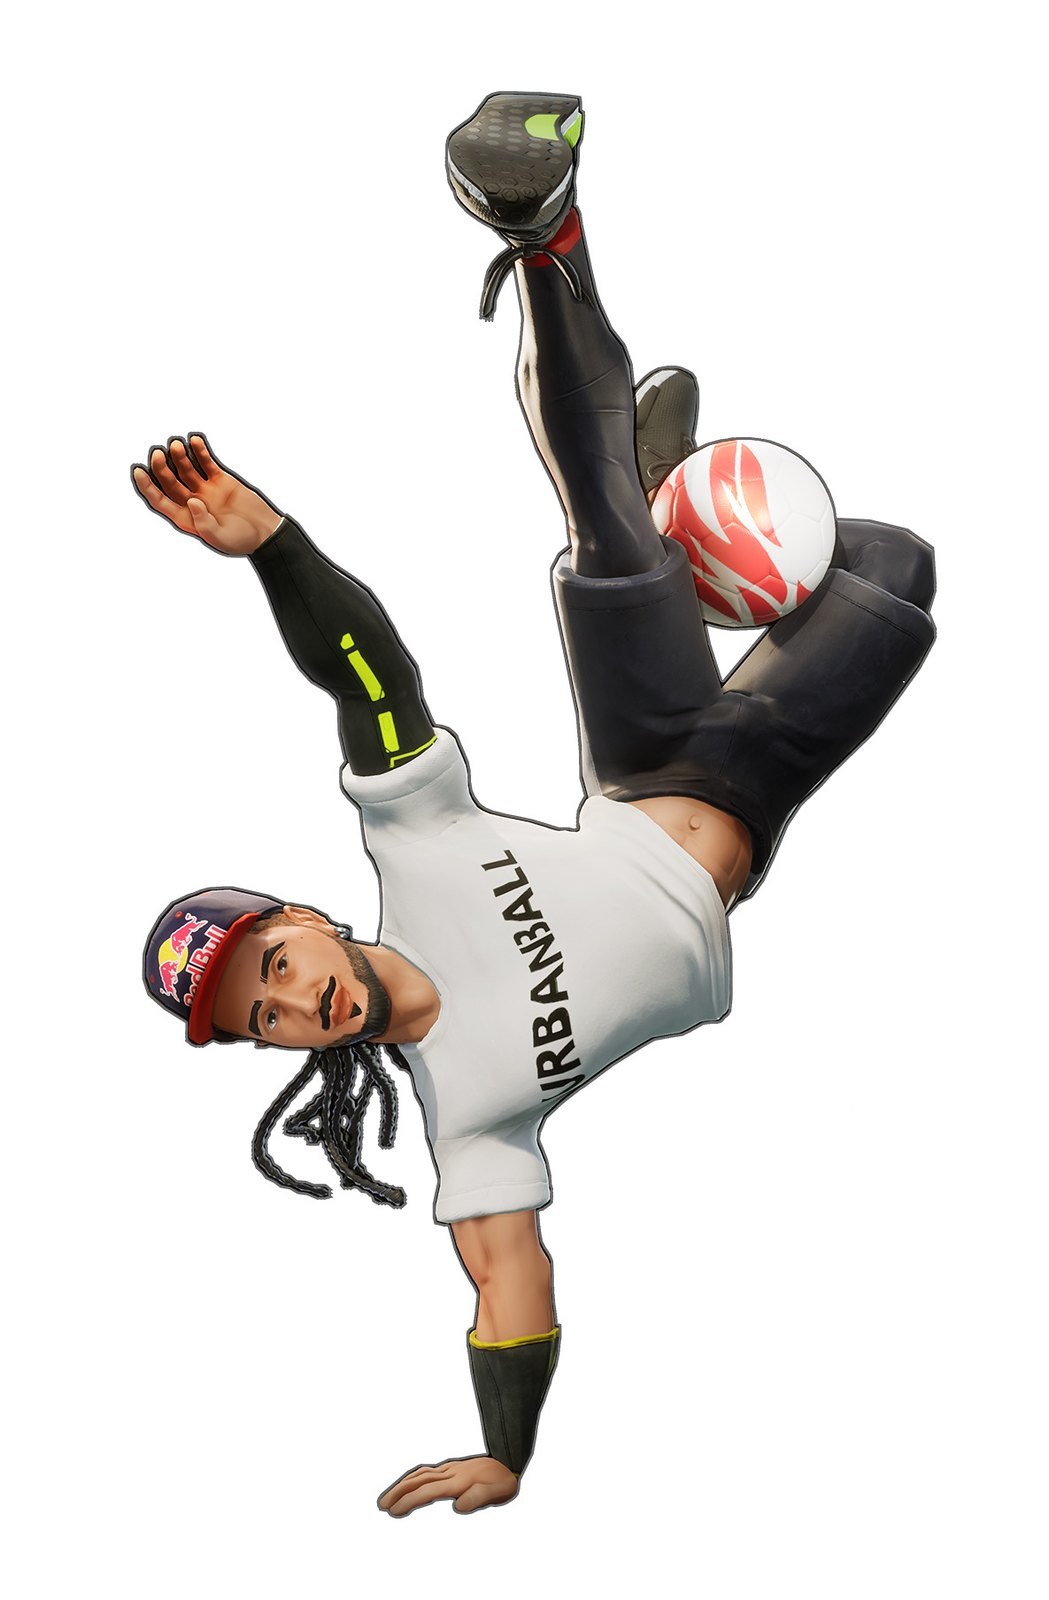 Street Power Soccer (Street Power Football)